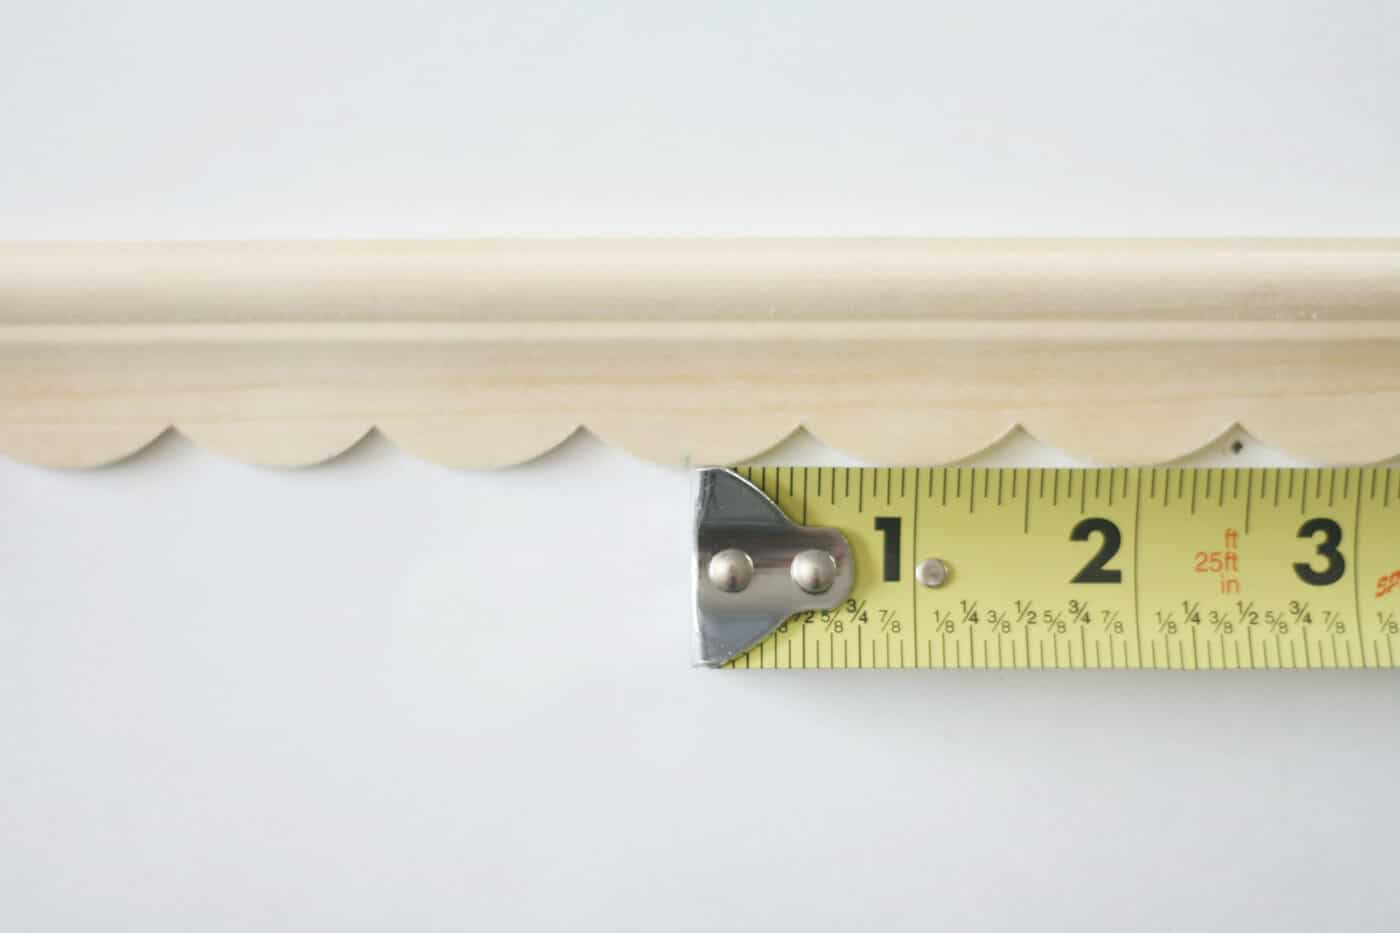 Measuring tape next to a piece of wood trim